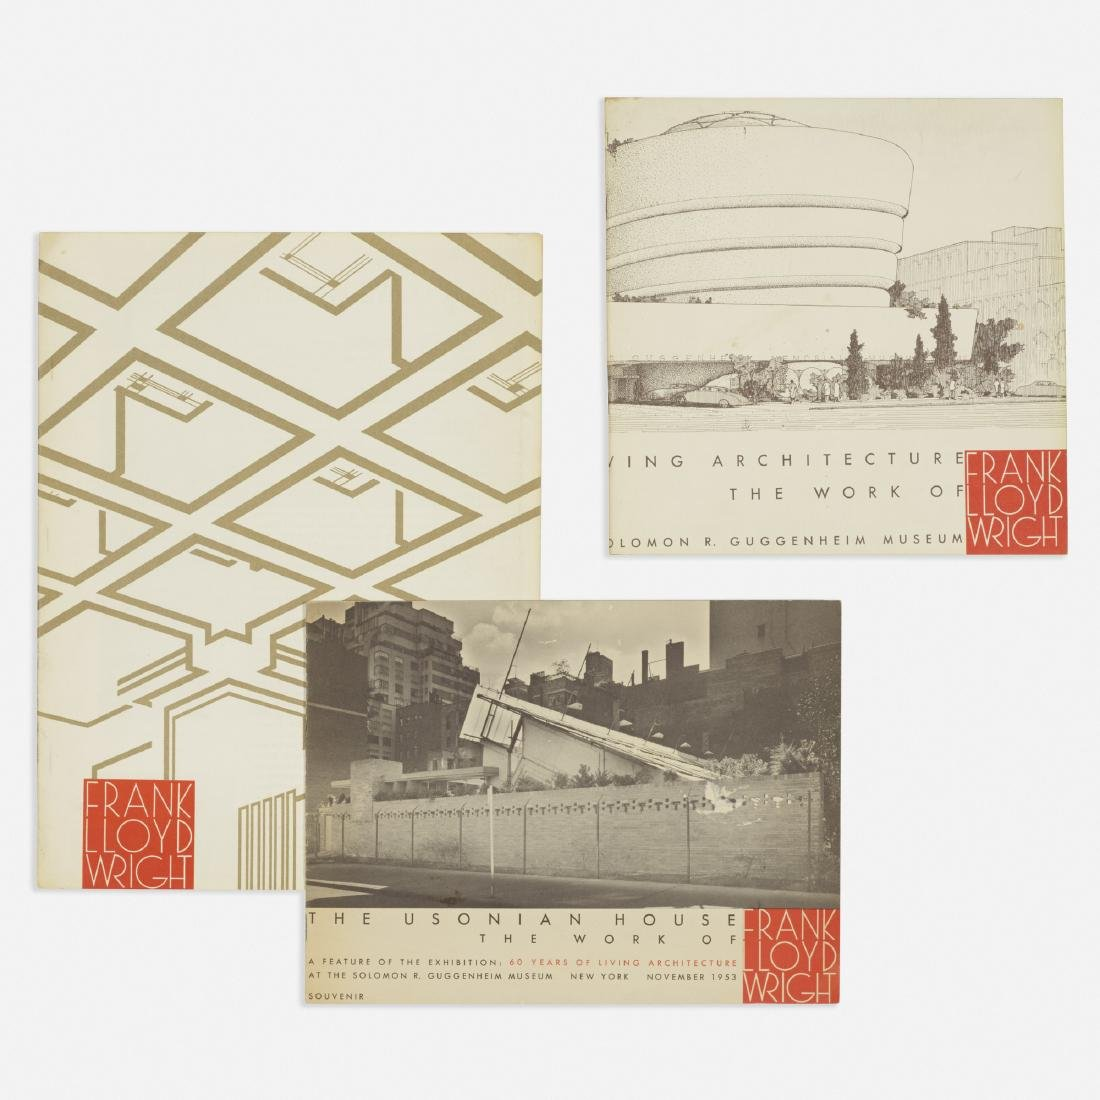 printed materials relating to Frank Lloyd Wright